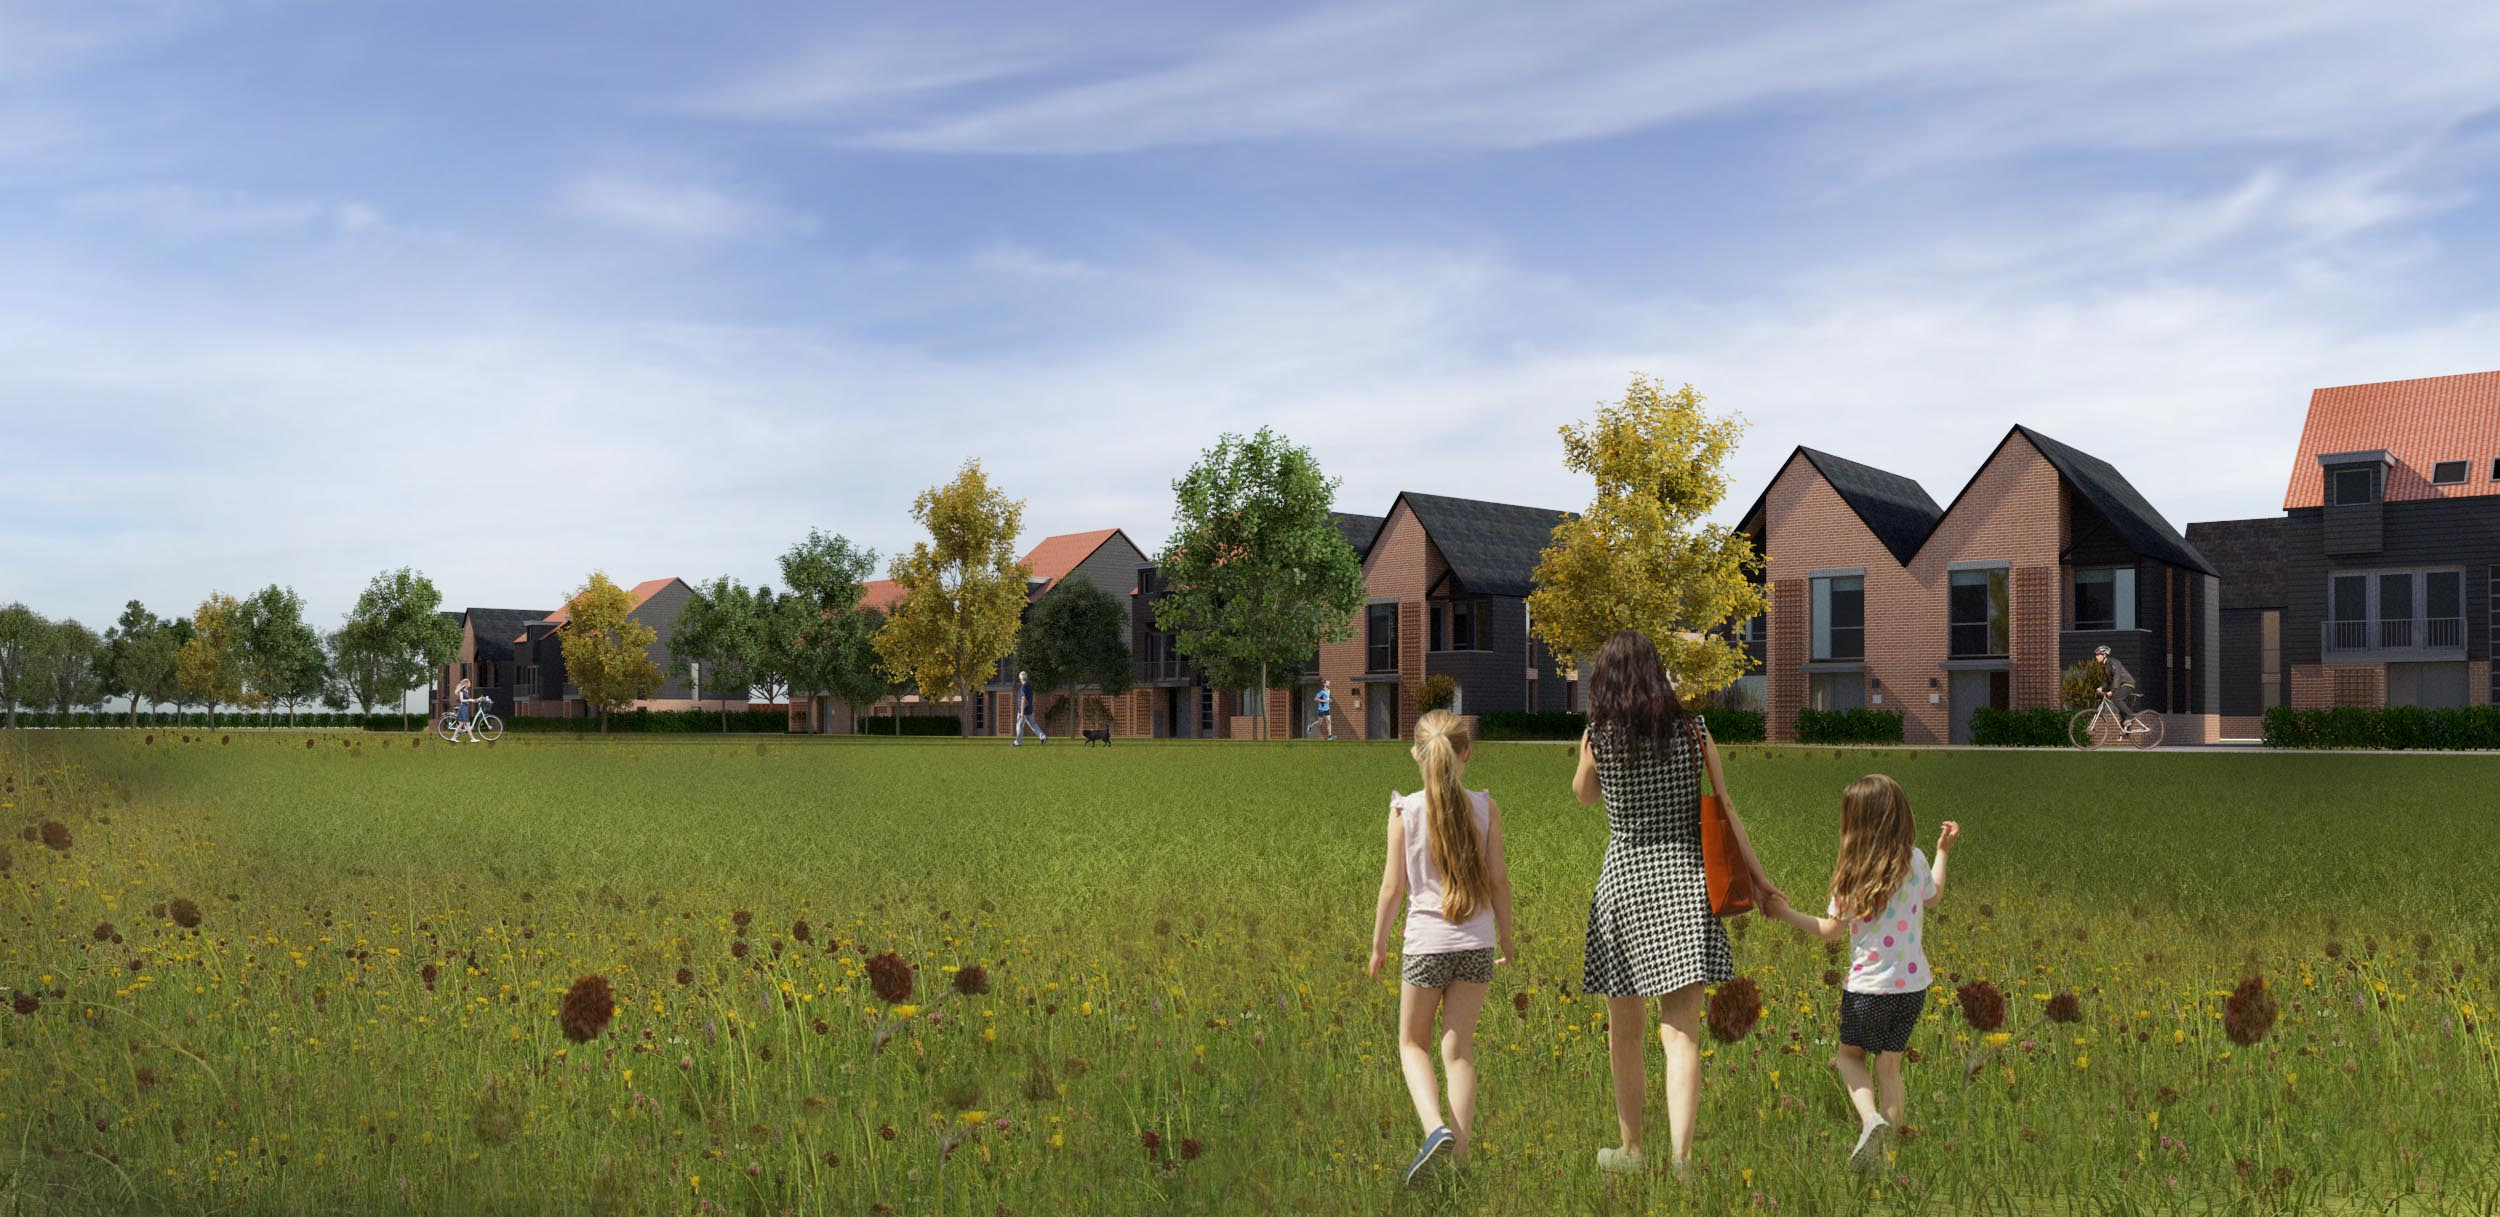 View of proposed development in Billericay